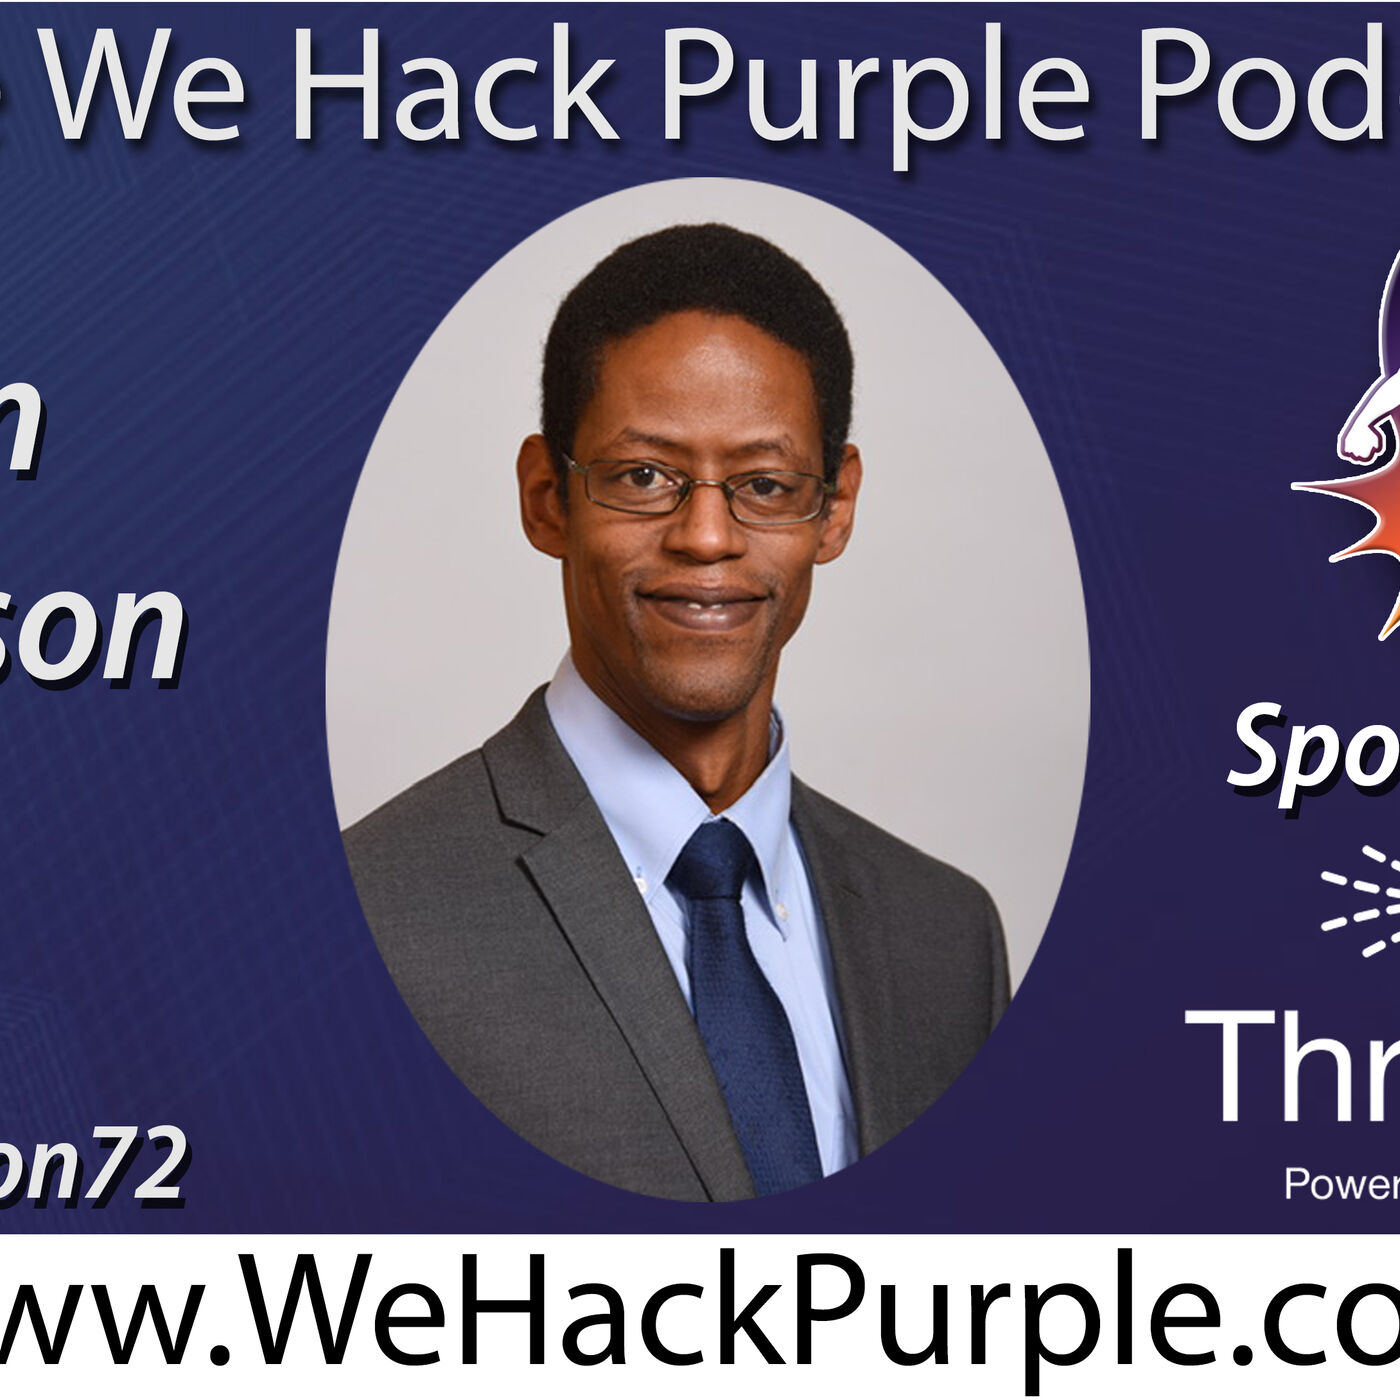 We Hack Purple Podcast 20 with Brian Anderson